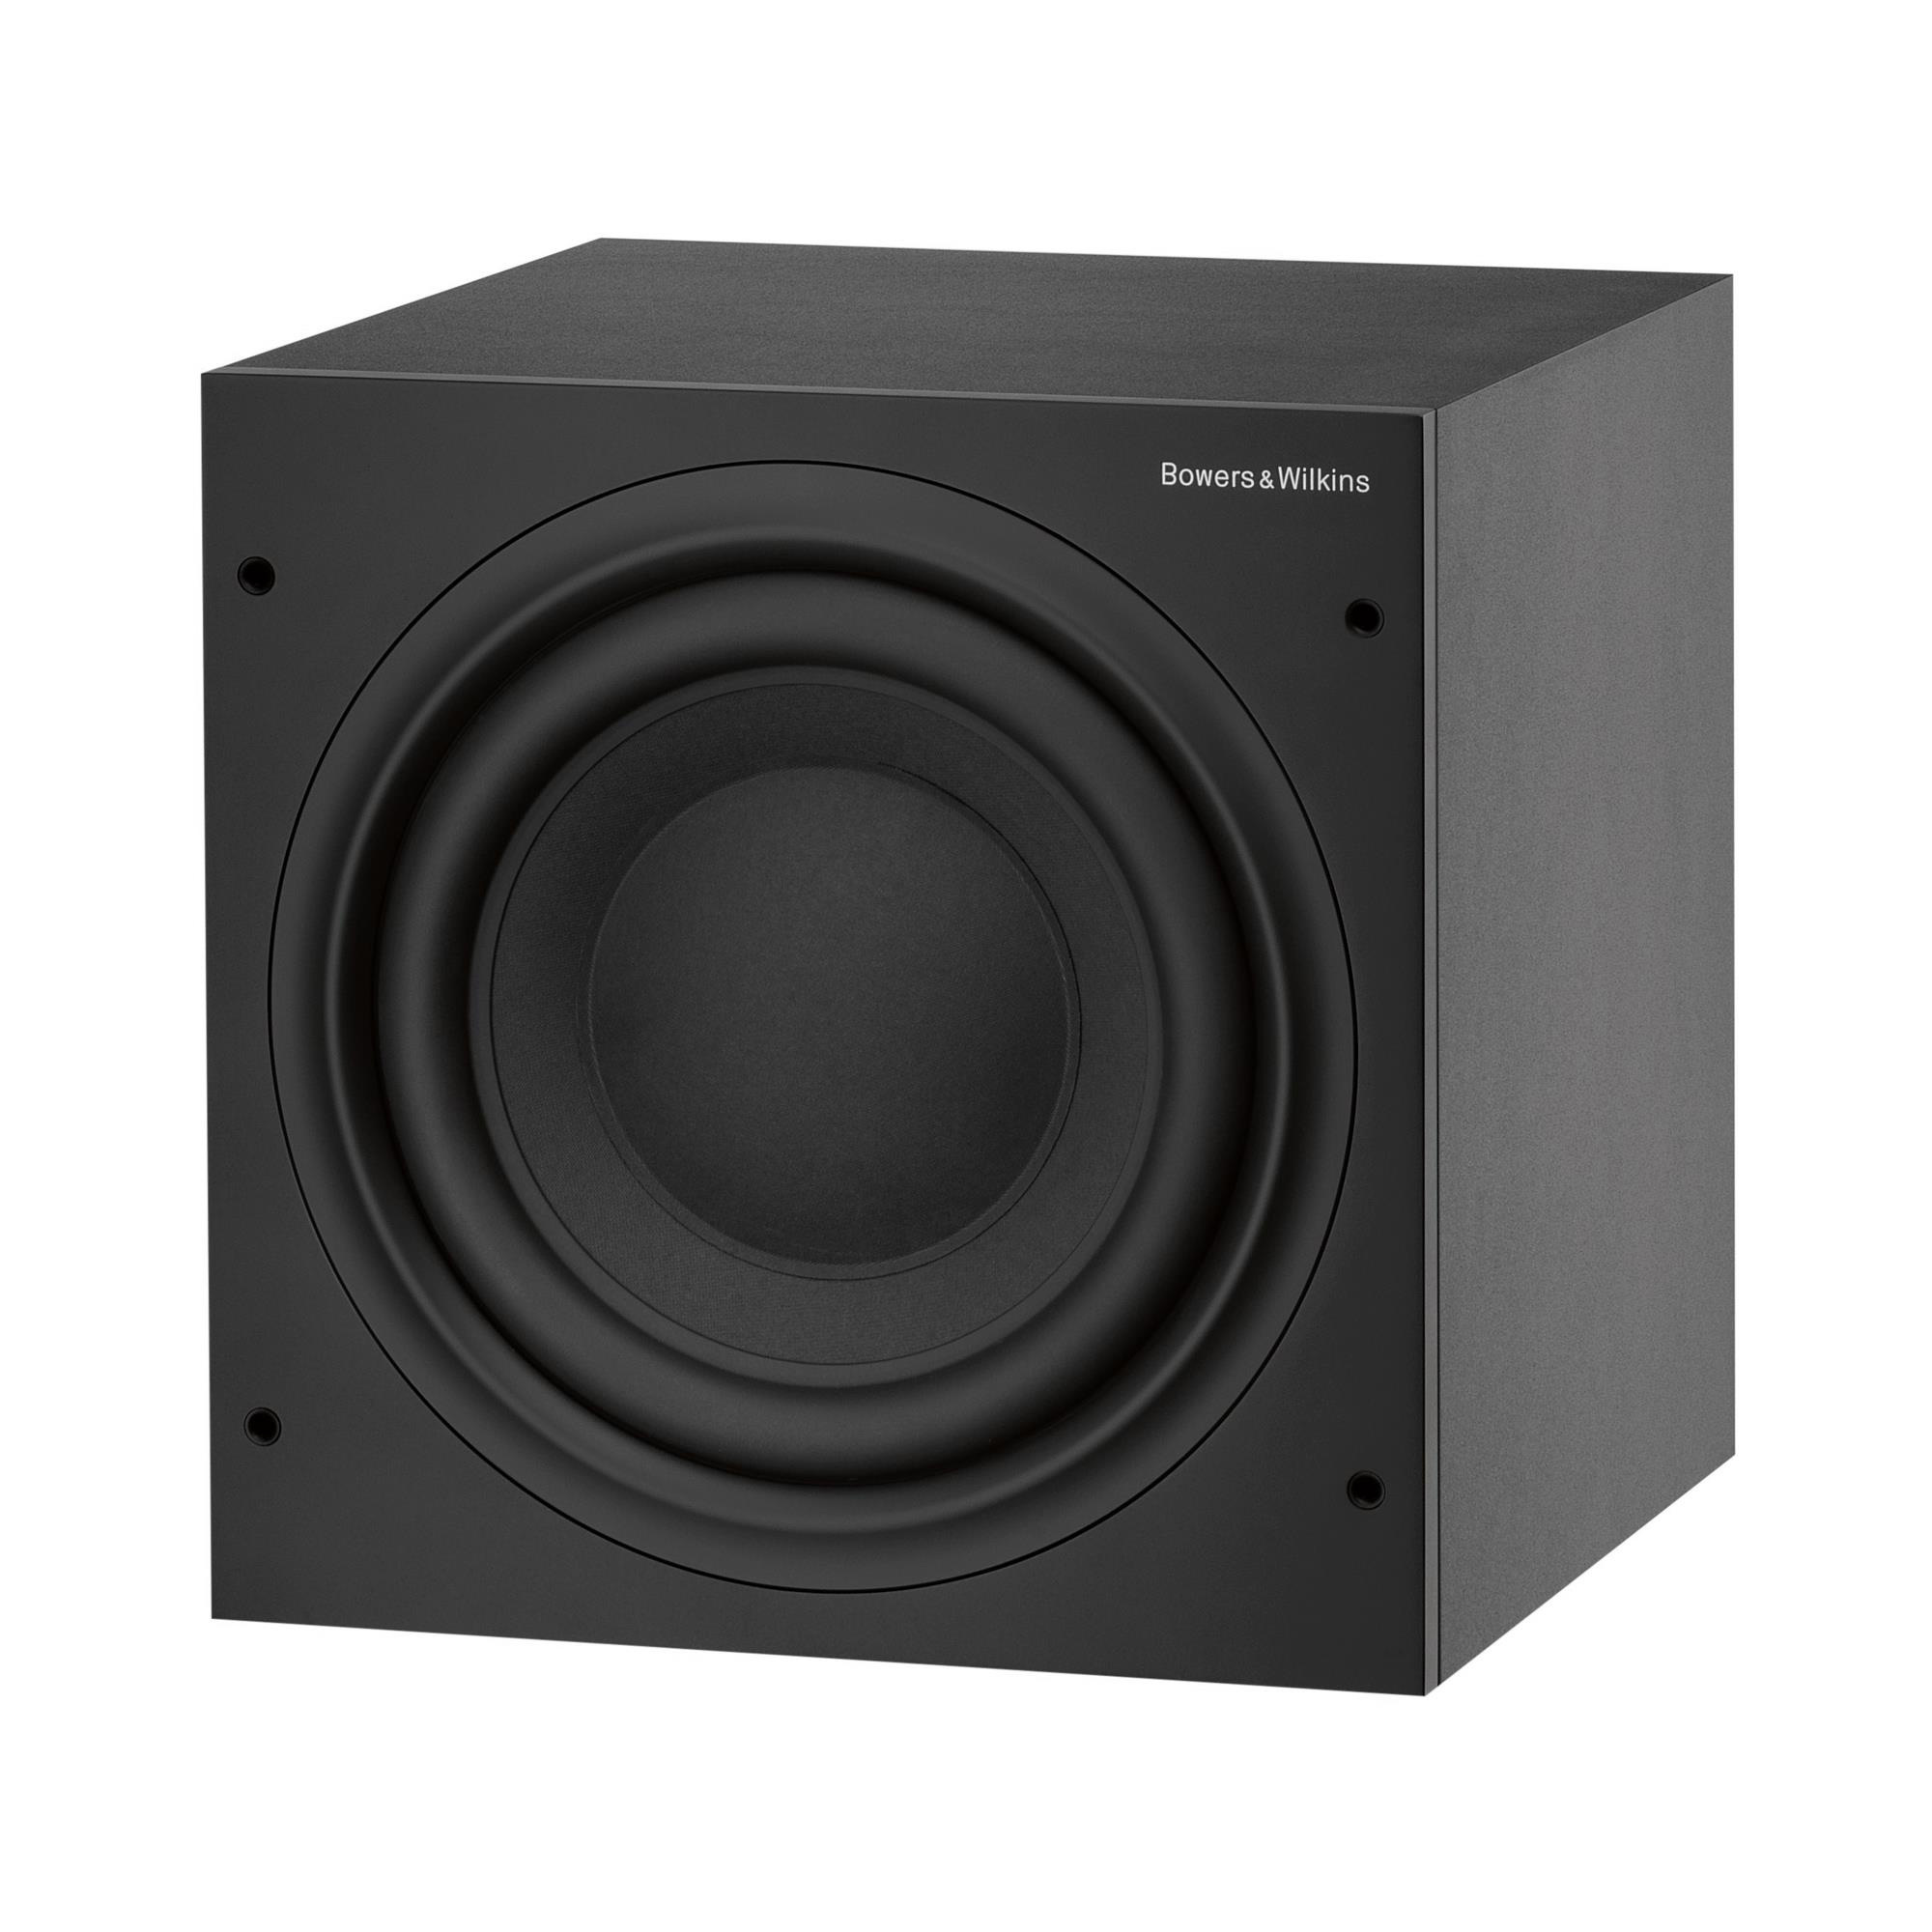 Bowers & Wilkins ASW610XP Subwoofer (Matte Black)